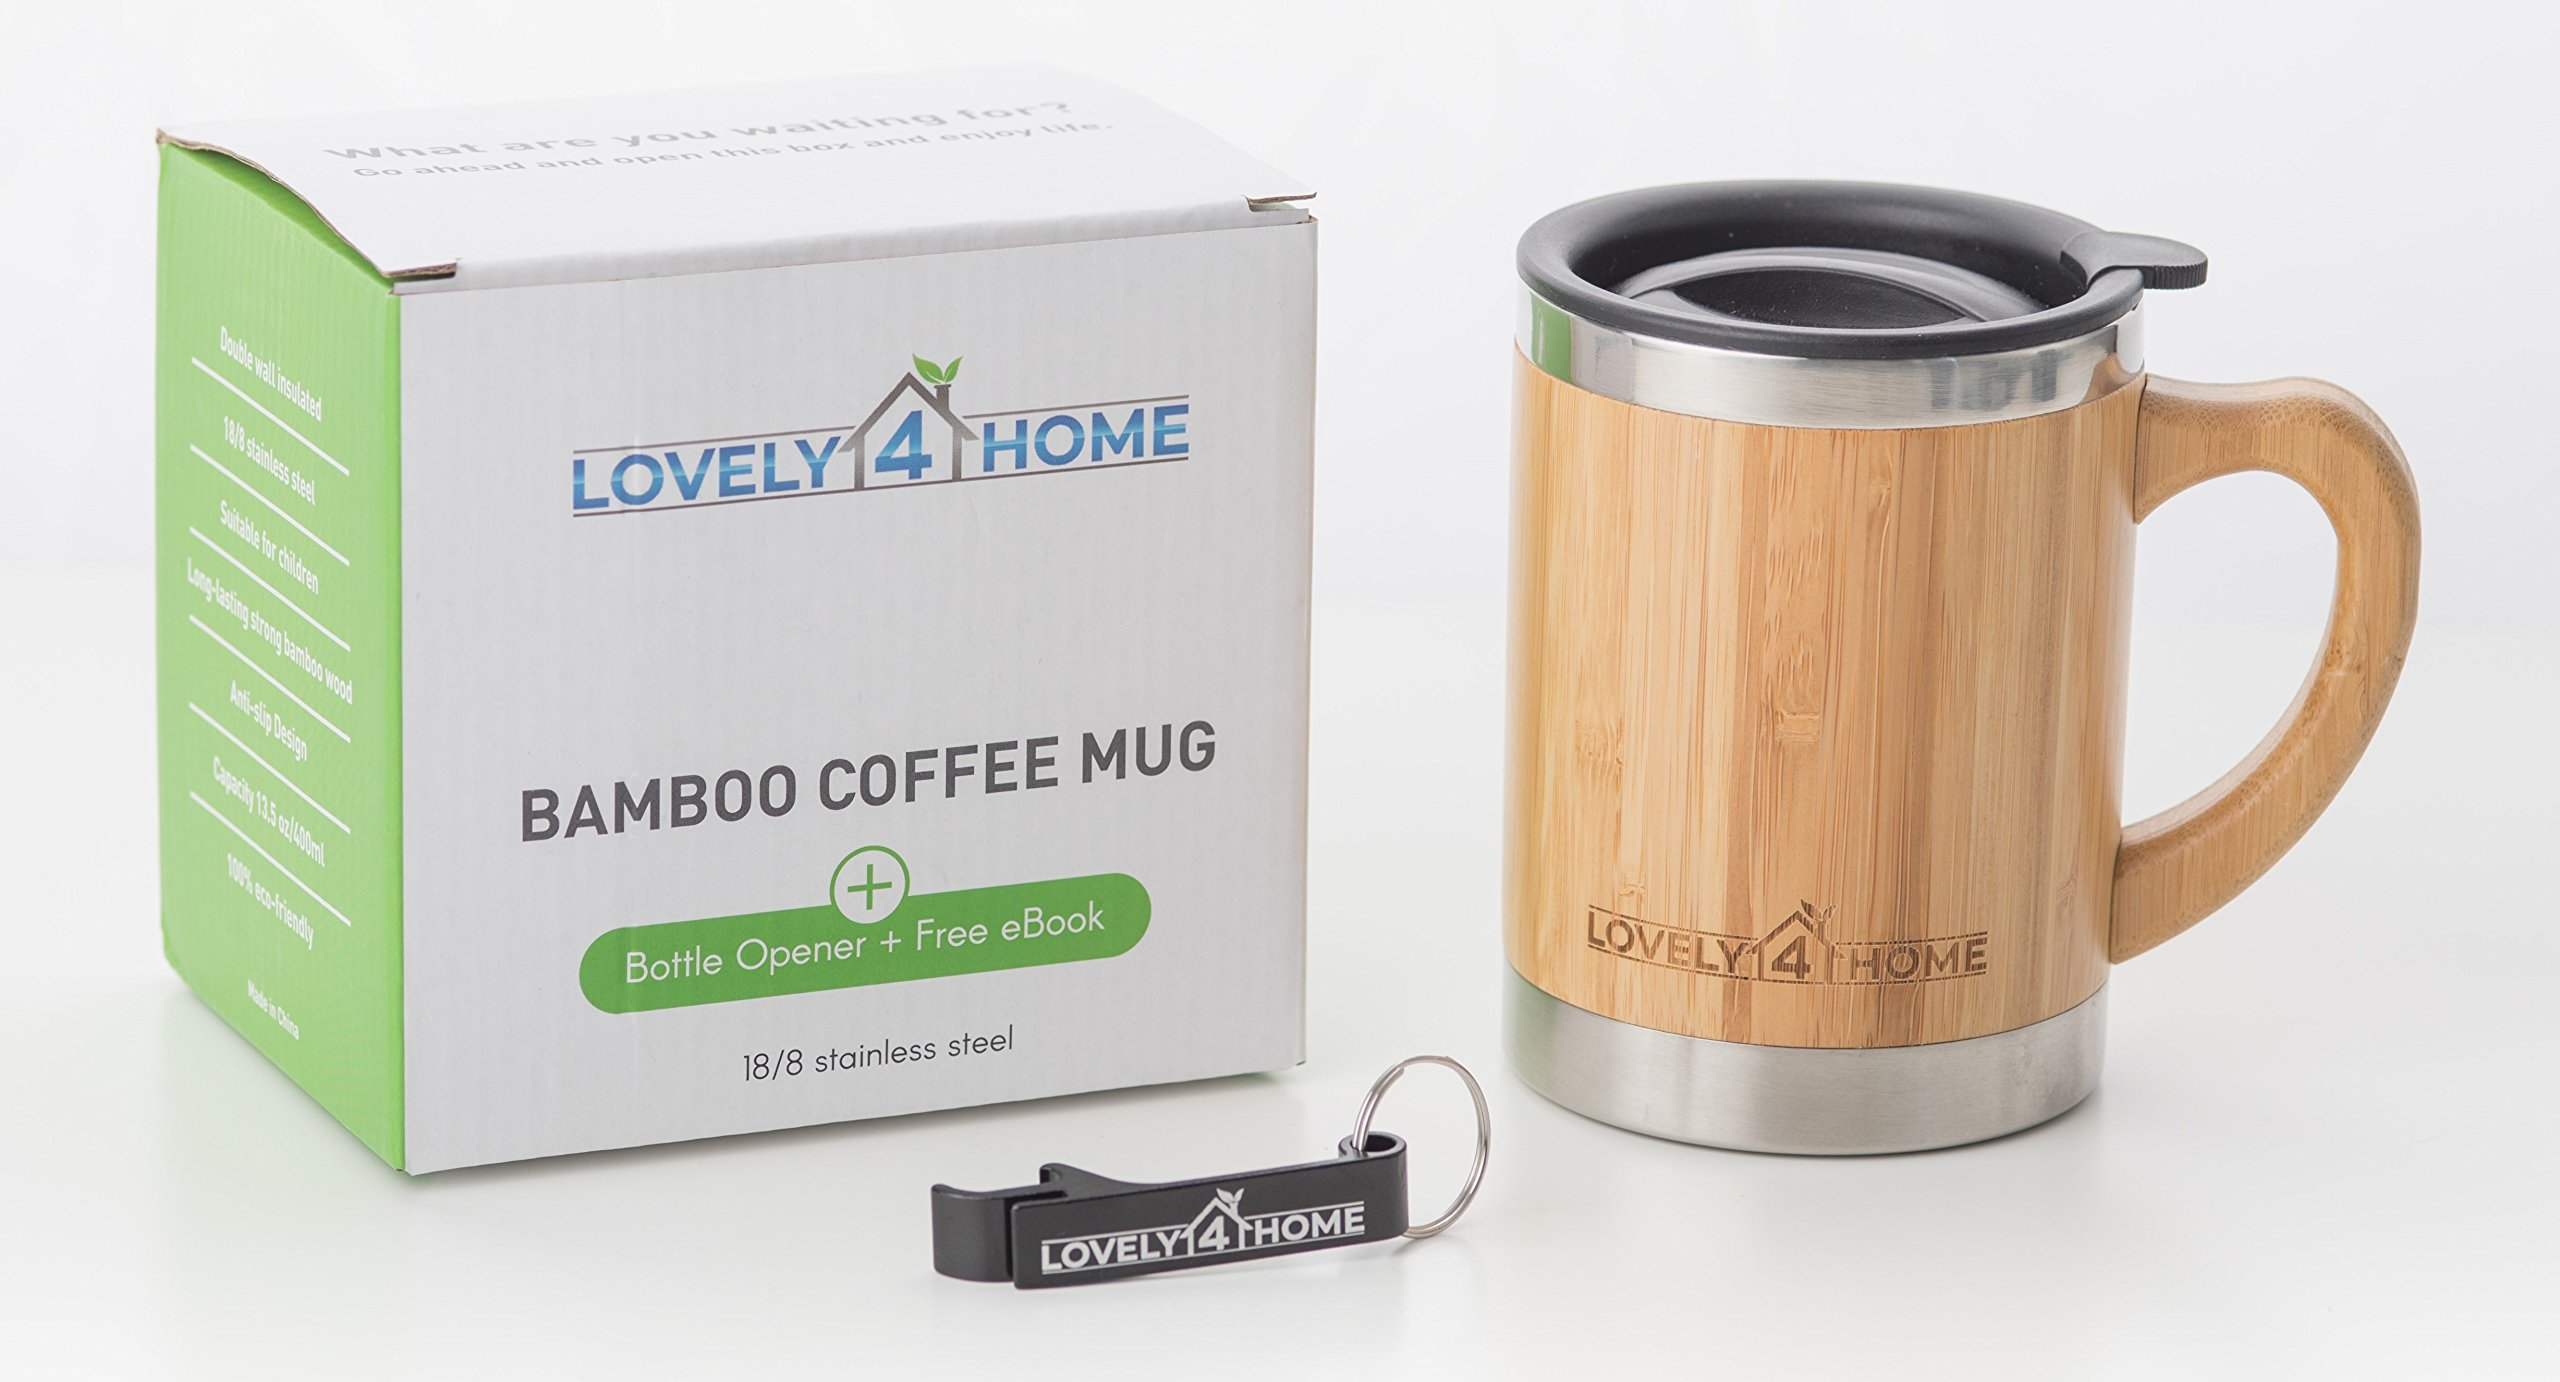 Bamboo Insulated Coffee Mug with Lid - Great Travel Design - Larger 13.5 Ounce Size - Wooden Handle and Barrel - Stainless Steel - Double Wall Insulation - Ideal for Coffee, Tea, Cold Drinks by Lovely 4 Home (Image #3)